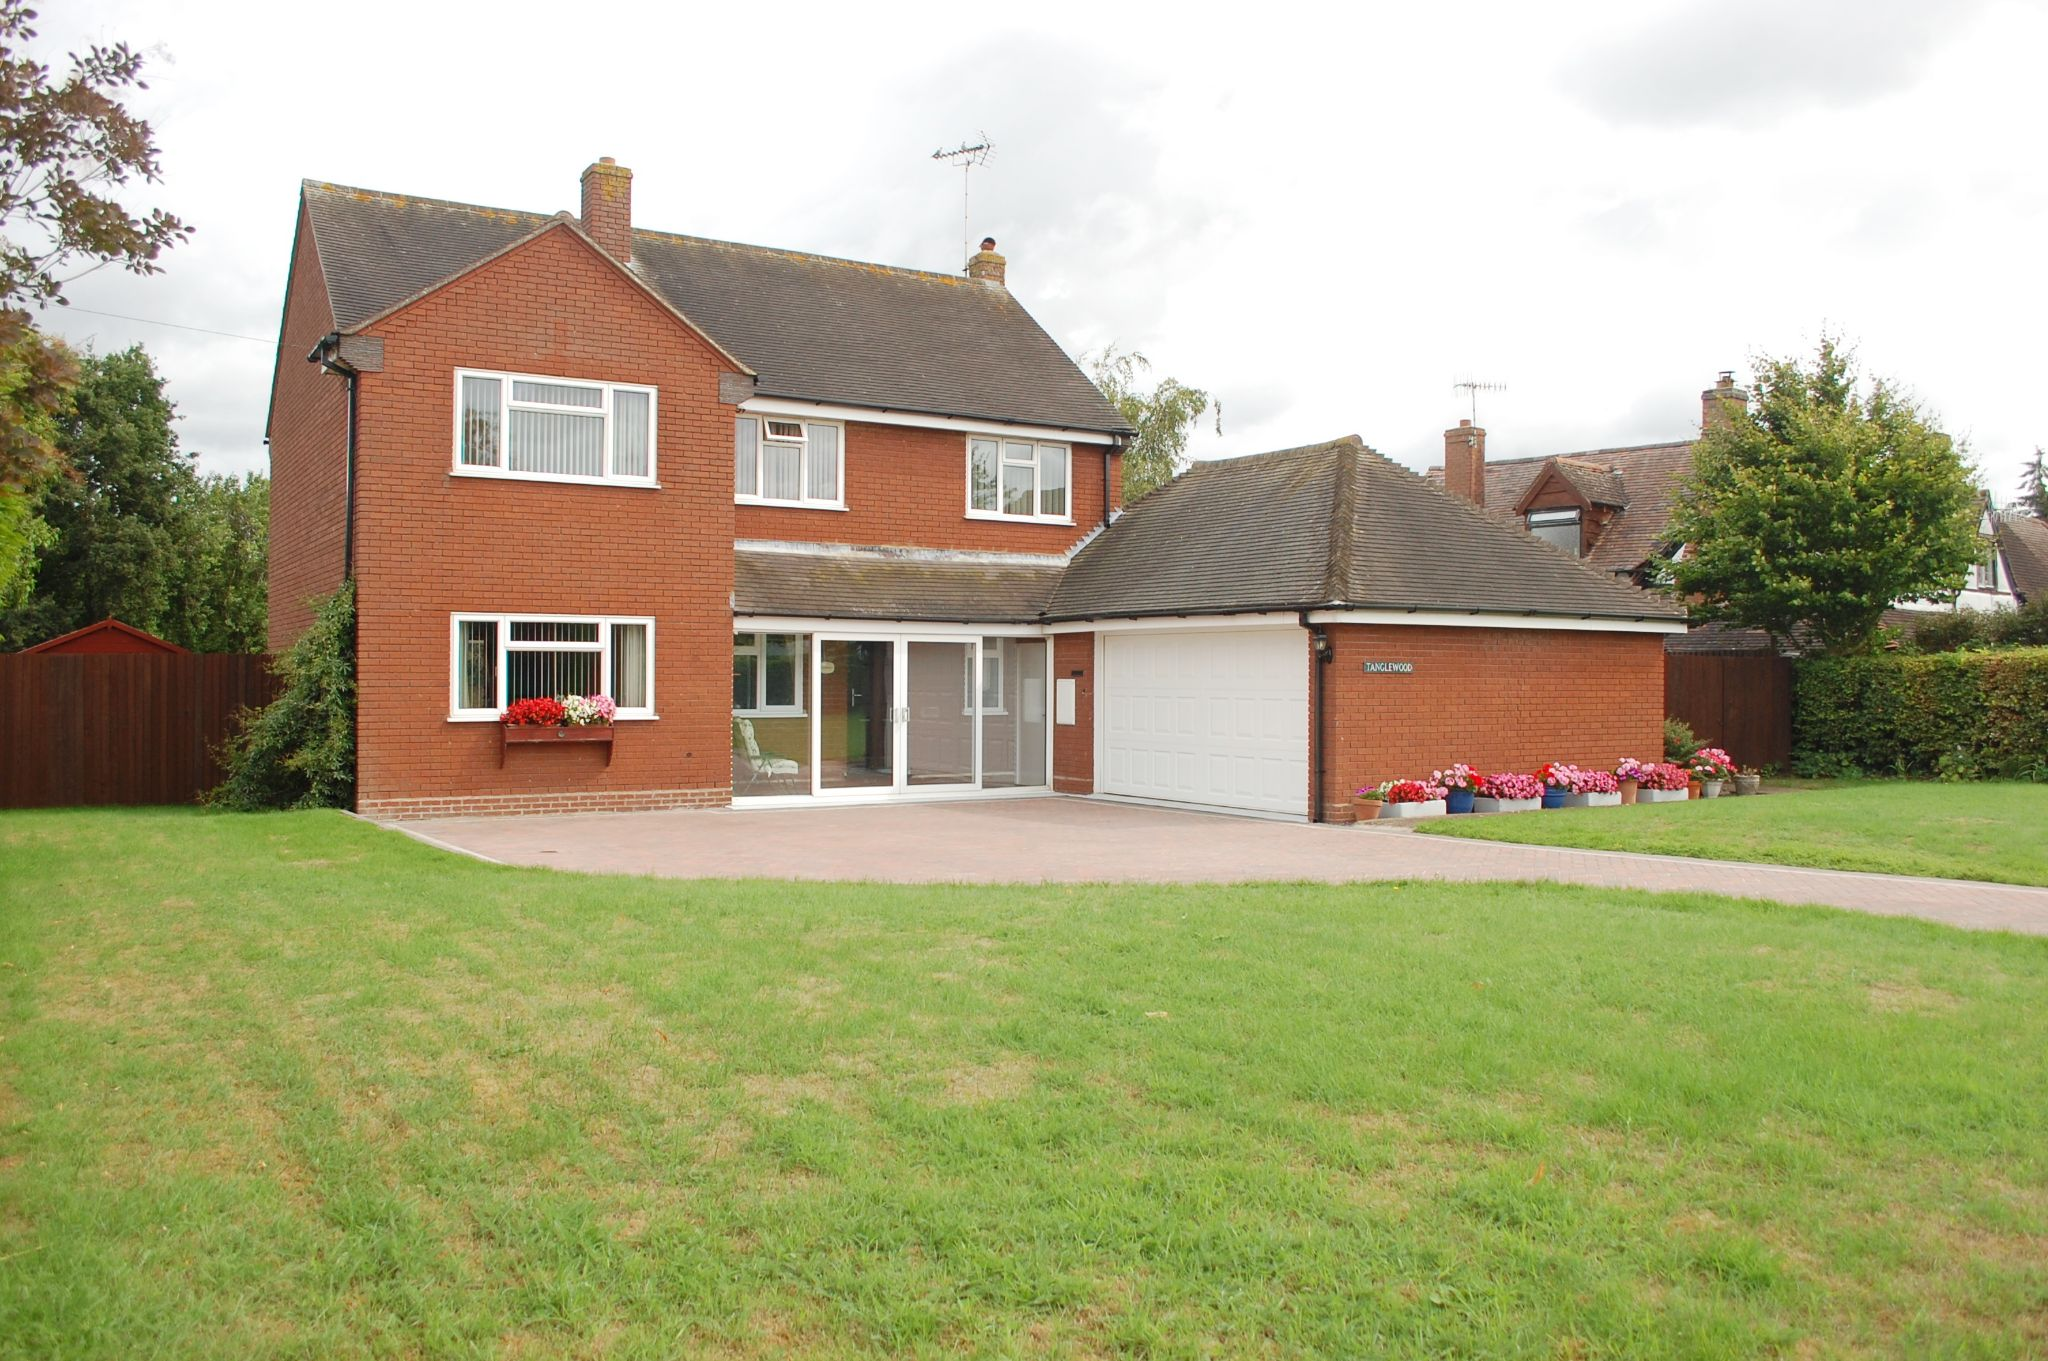 4 bedroom detached house SSTC in Broom Lane, Dunnington, Alcester - Photograph 21